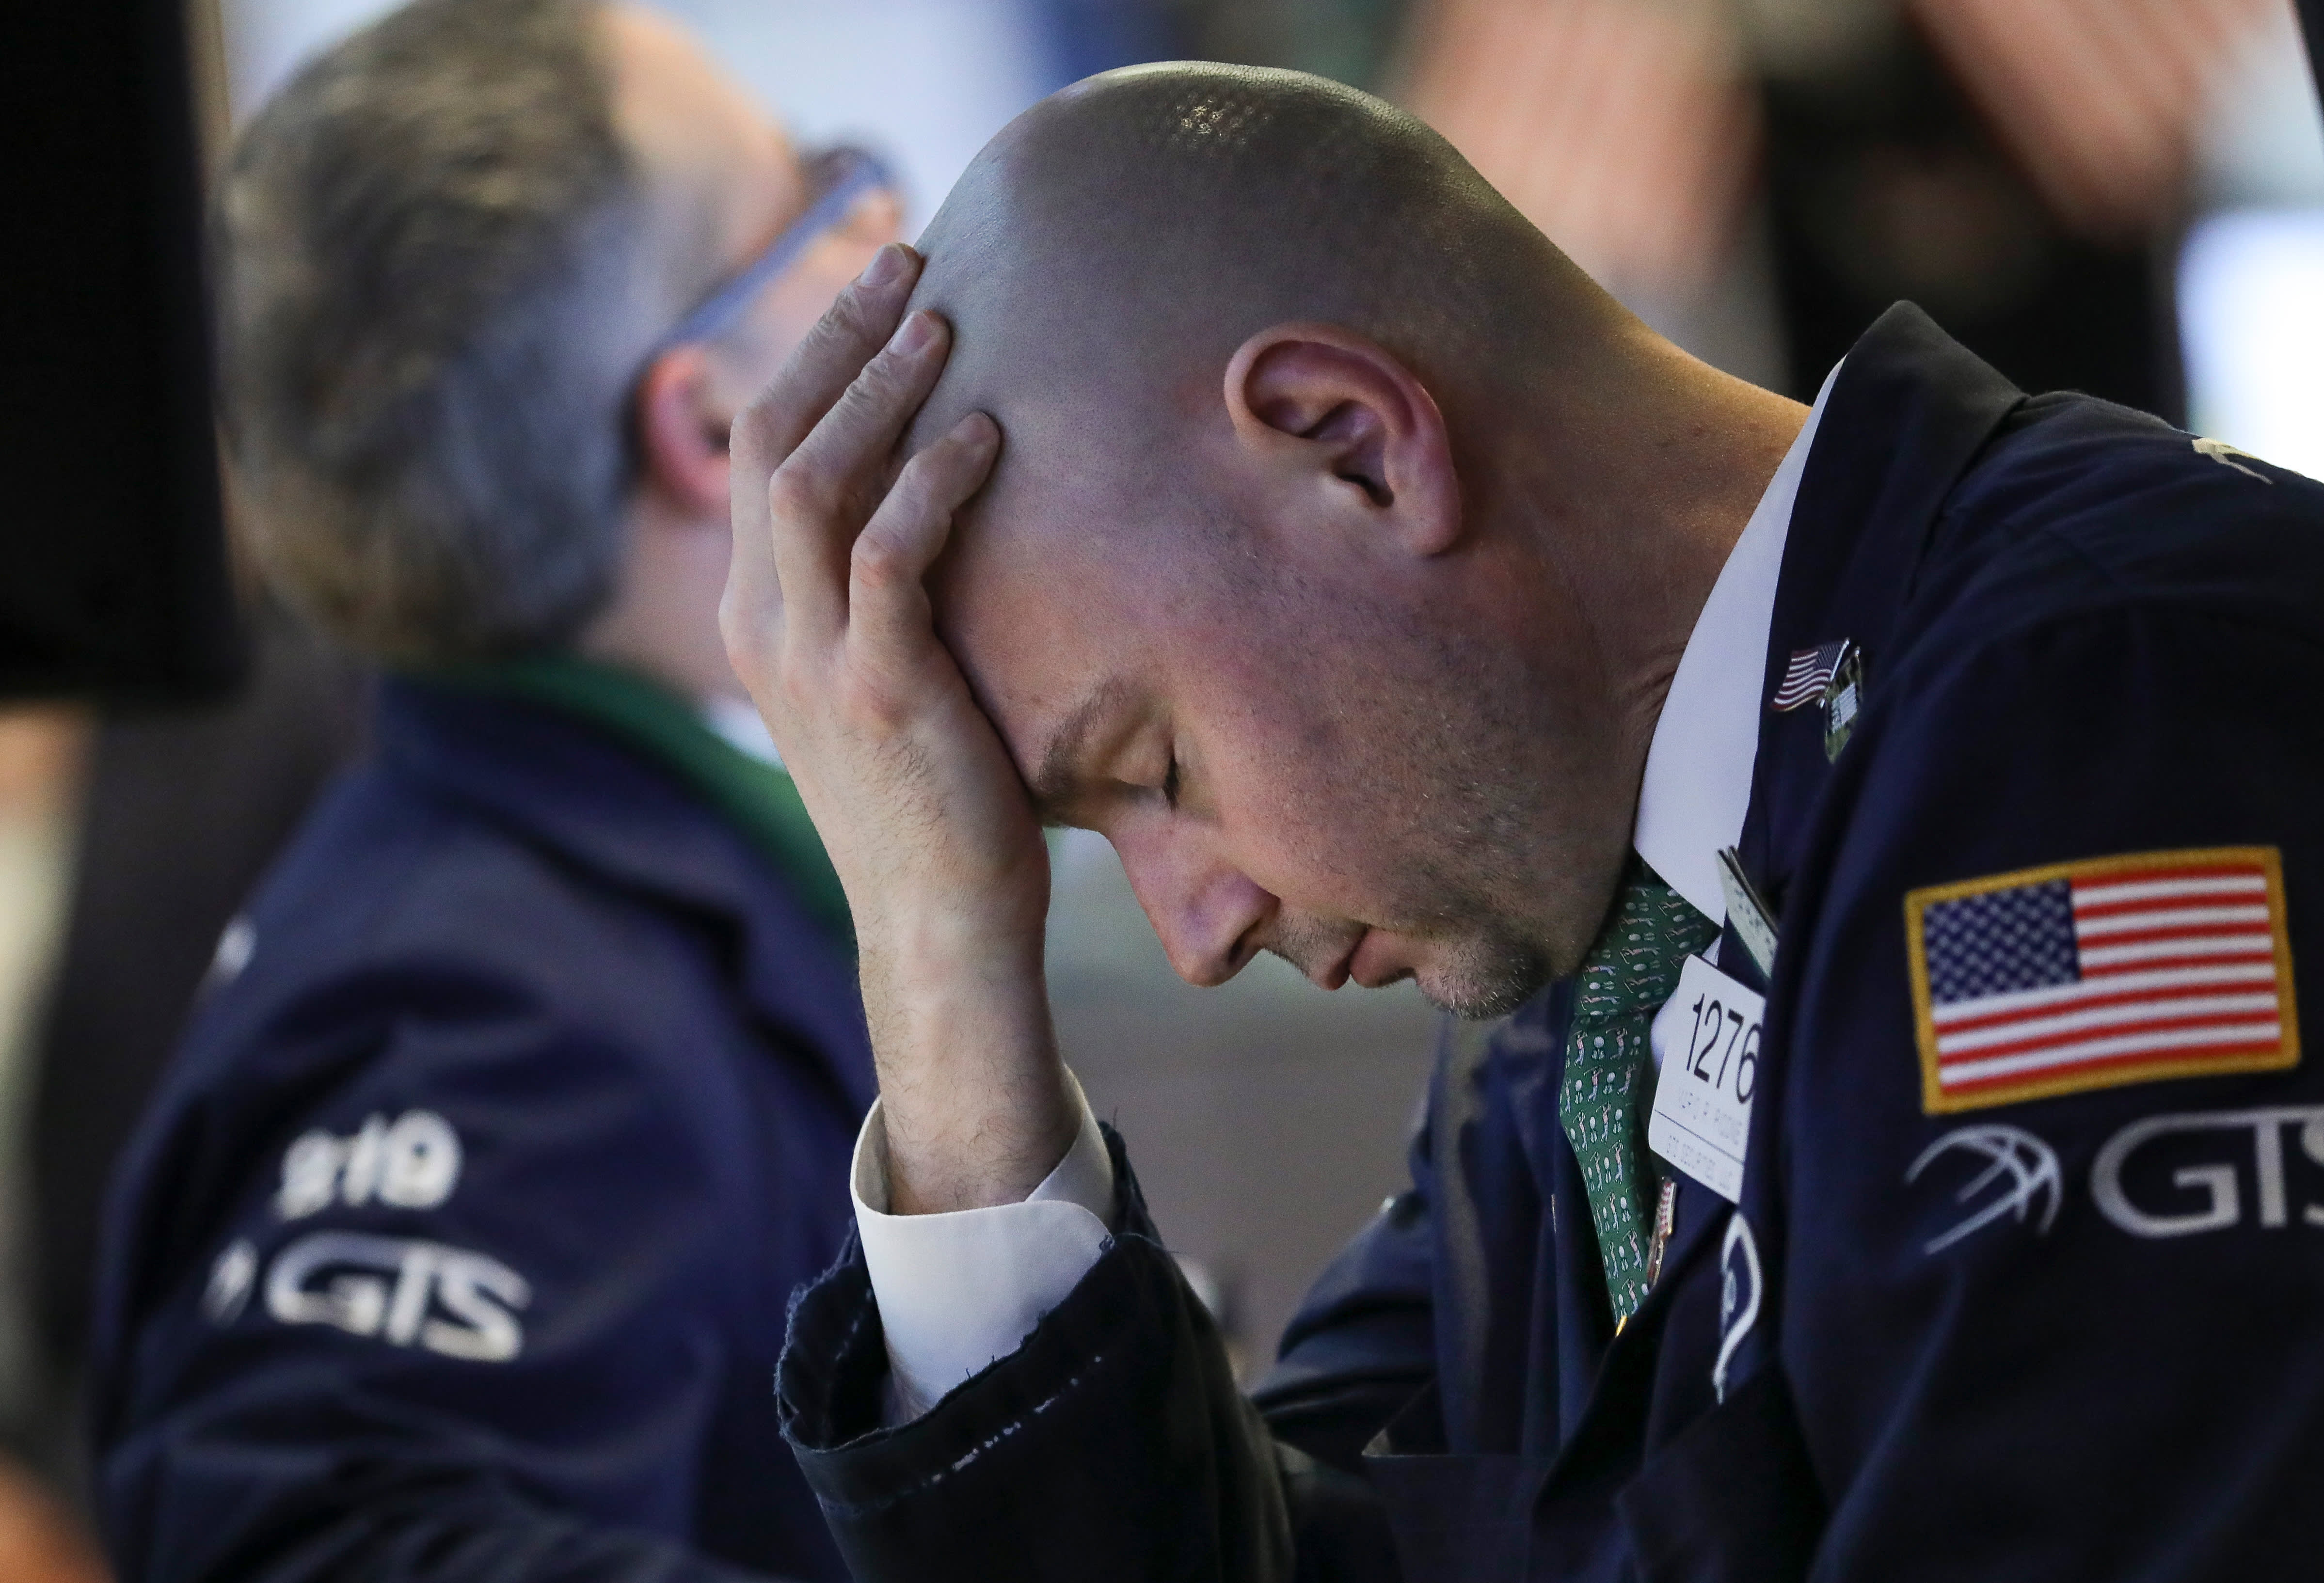 Dow plunges 750 points after bond market flashes a recession warning, Citigroup tanks 5%